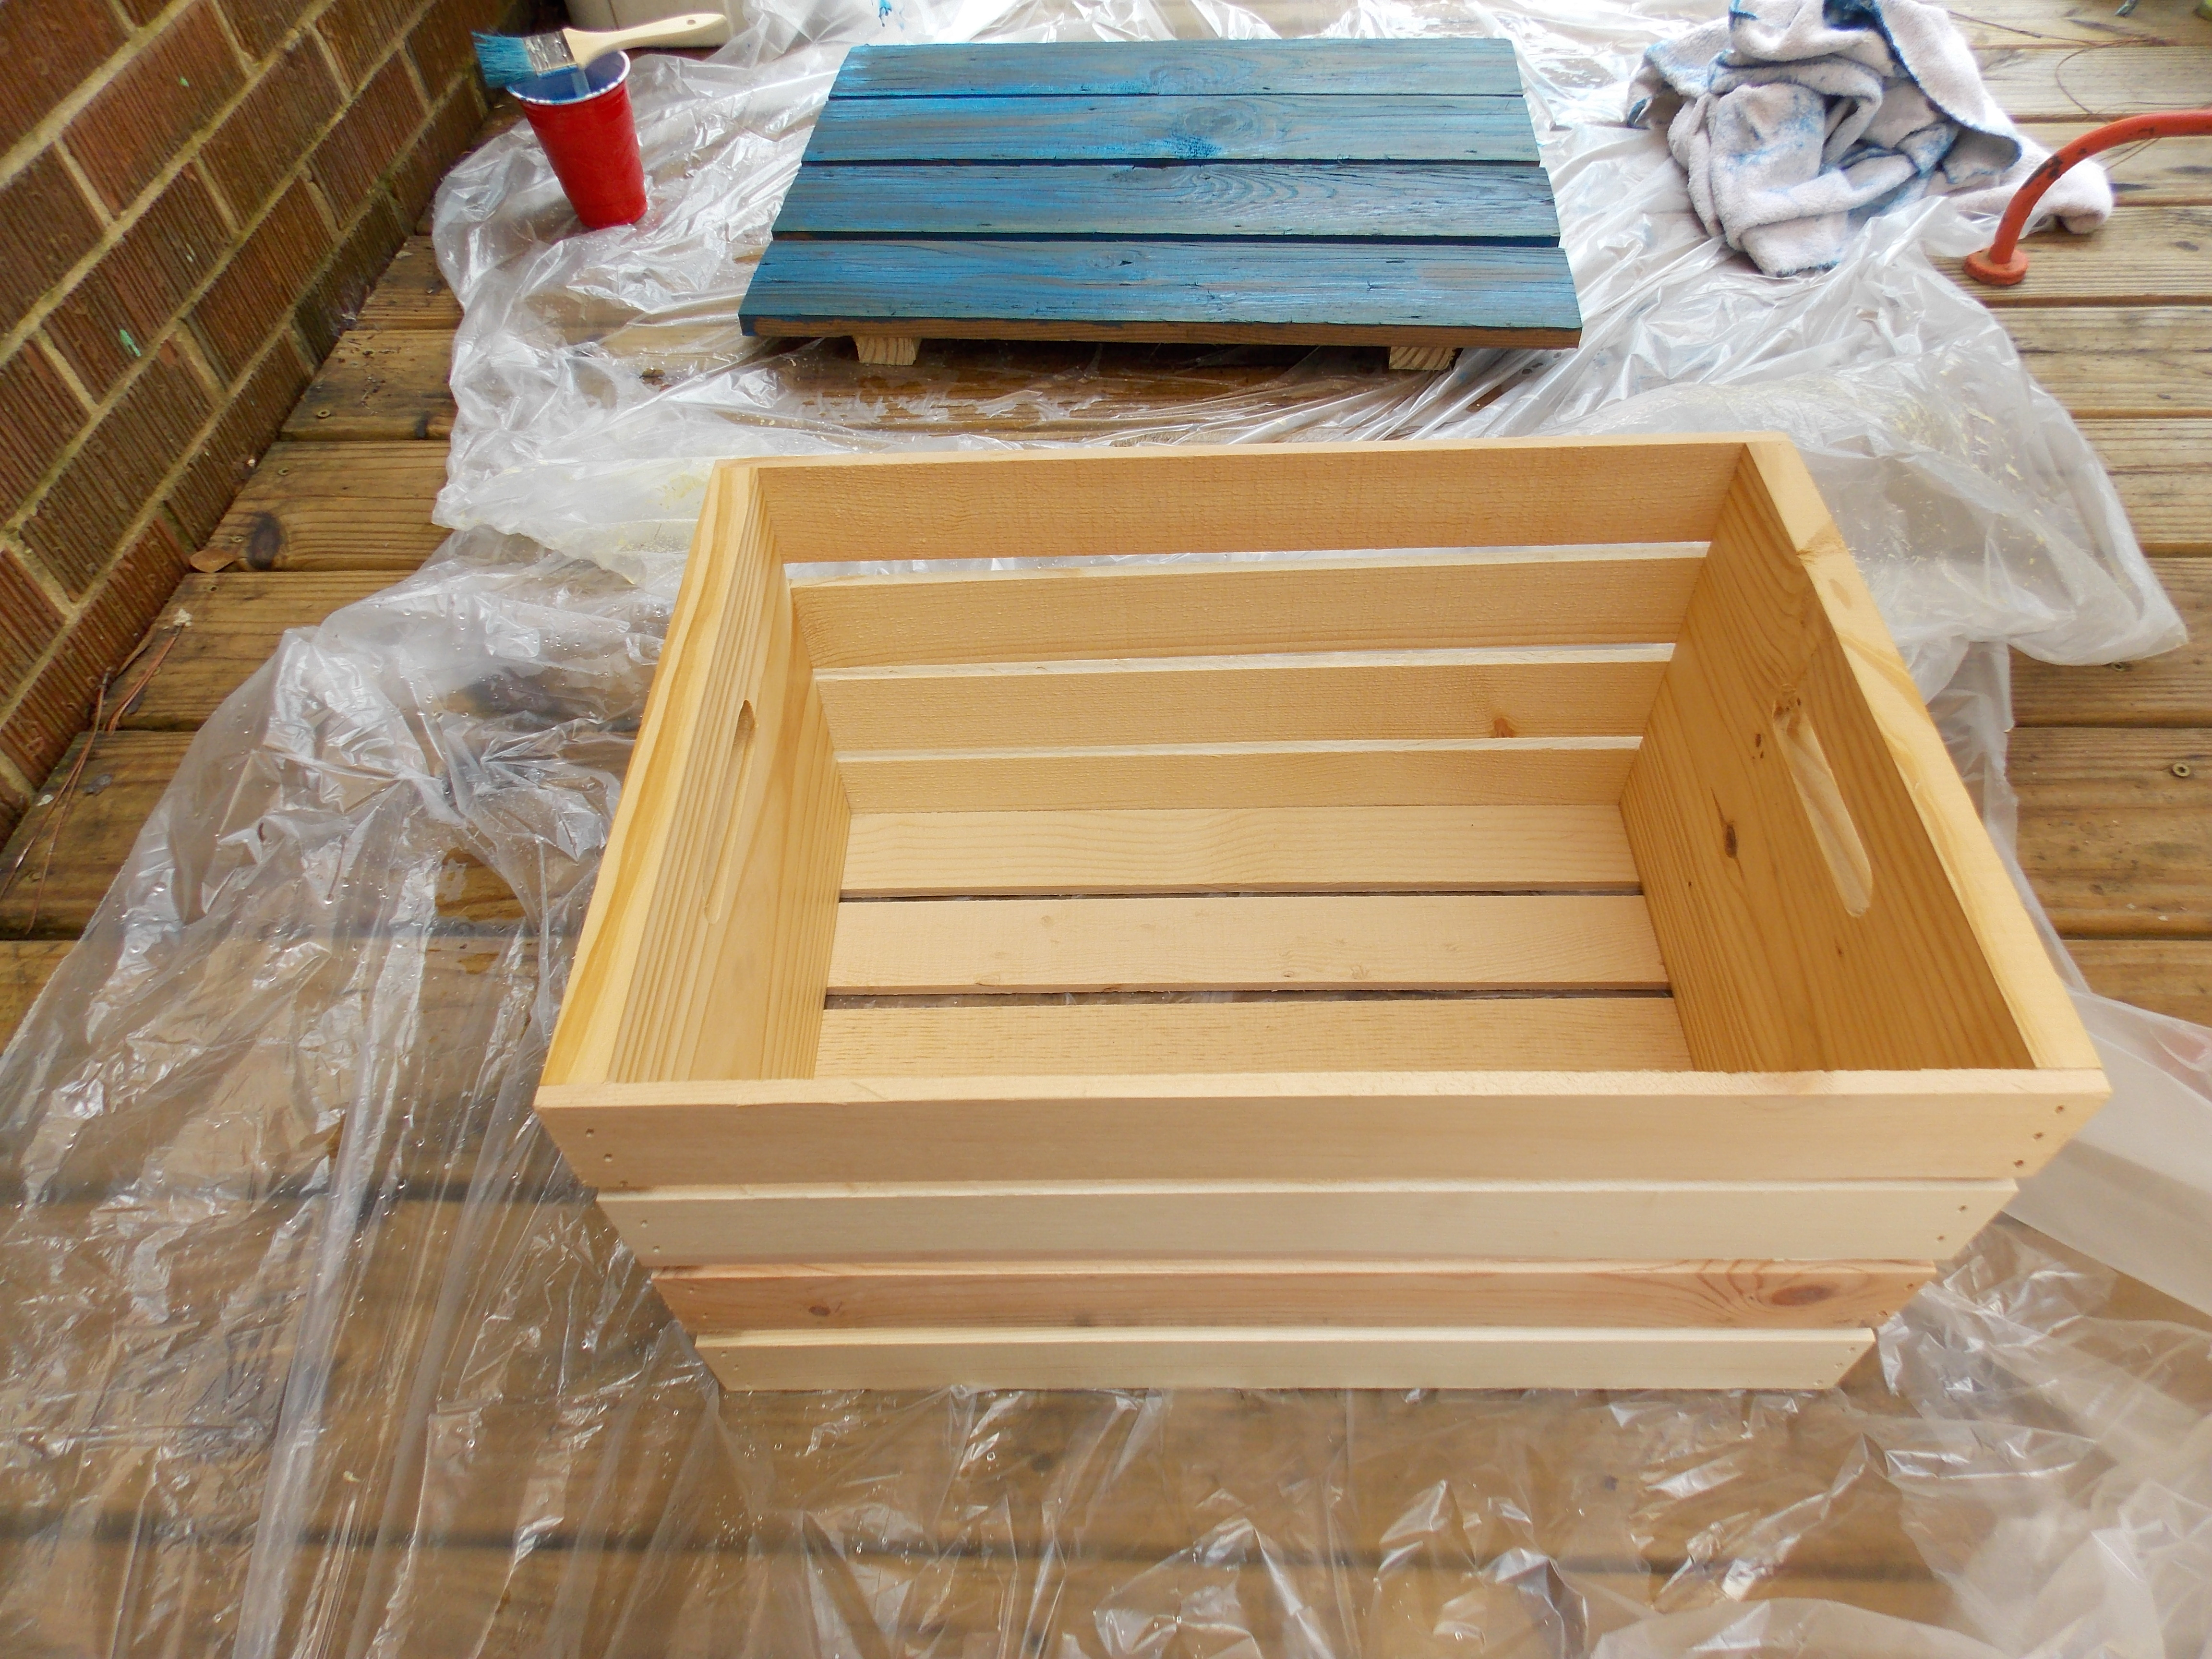 A little paint and water was all it took to transform this $10 crate proving you really can whitewash wood any color